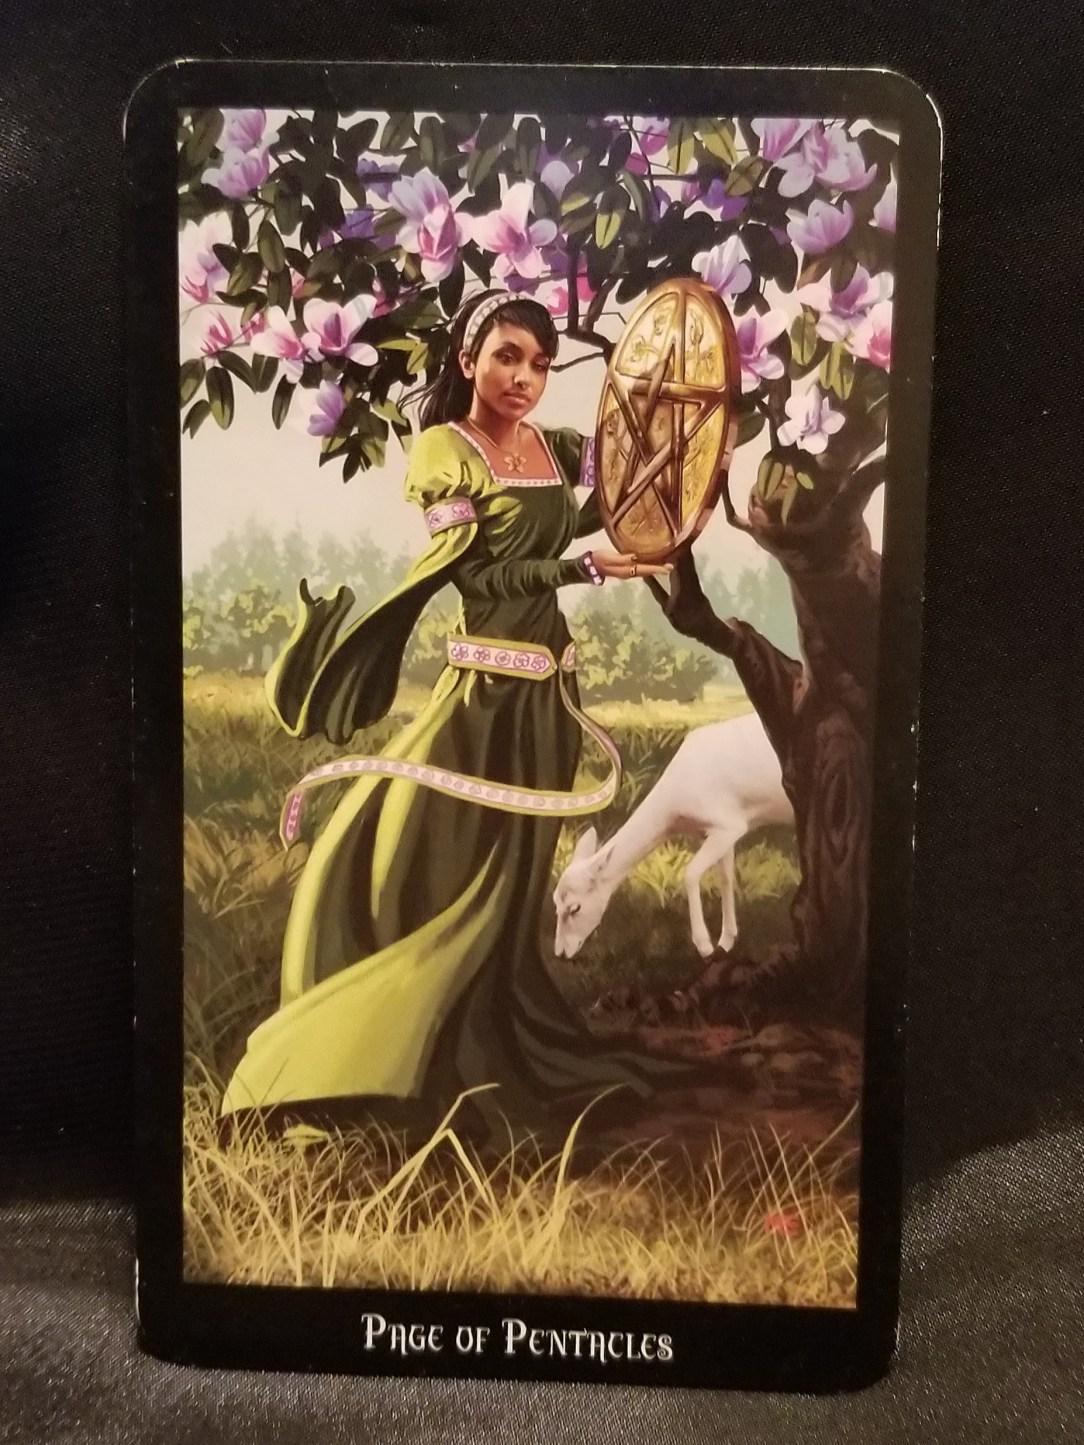 Page of Pentacles: Young girl holding large pentacle standing beneath a tulip tree